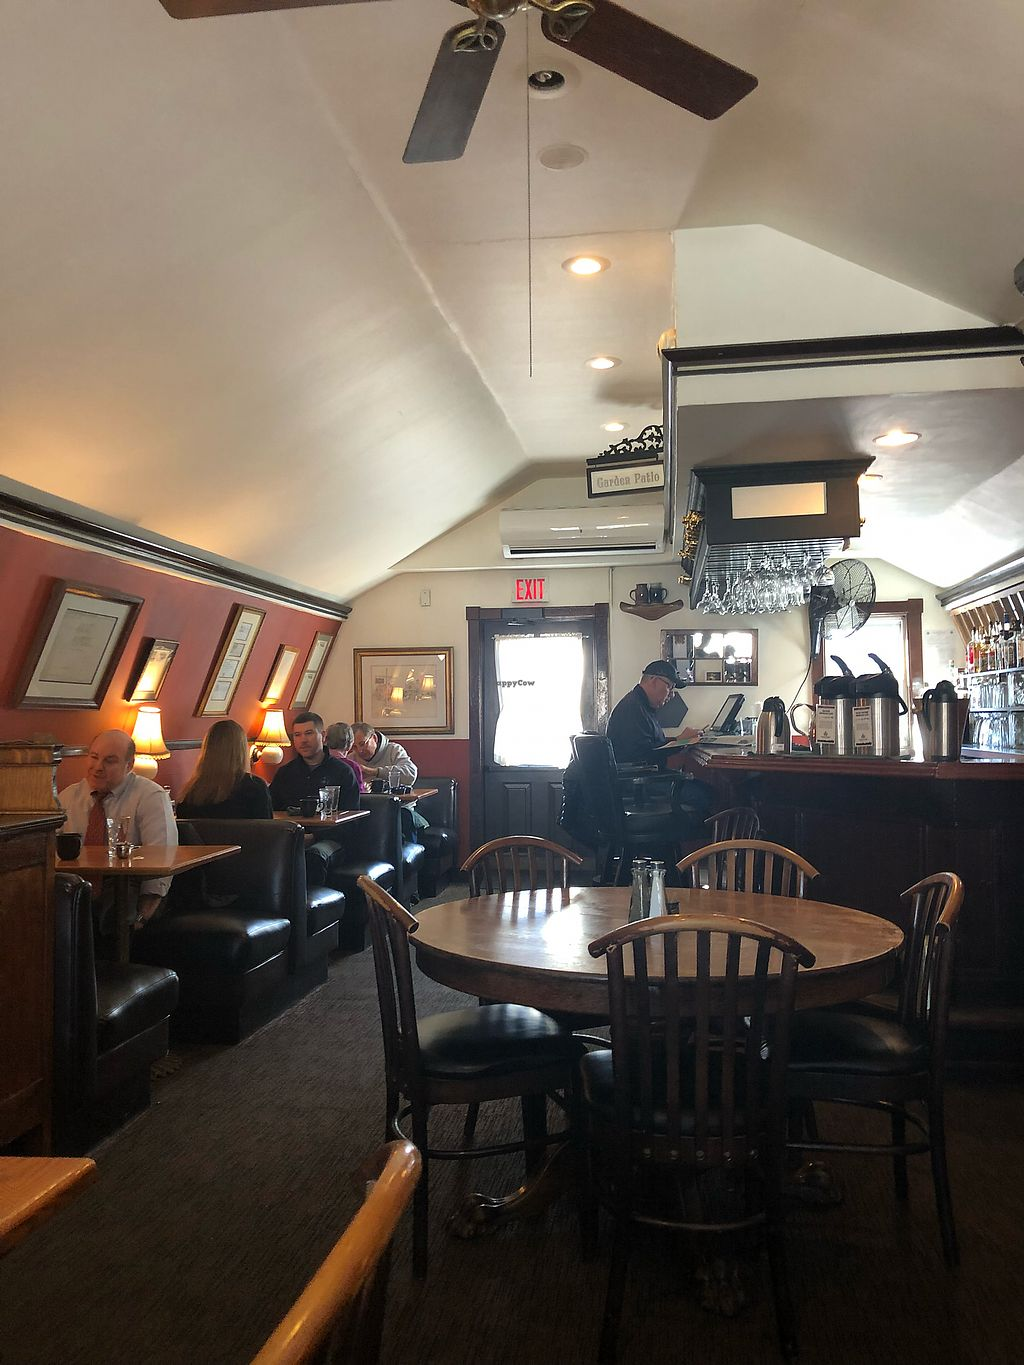 """Photo of Bayside American Cafe  by <a href=""""/members/profile/EmilyR"""">EmilyR</a> <br/>Upstairs  <br/> April 12, 2018  - <a href='/contact/abuse/image/70062/384734'>Report</a>"""